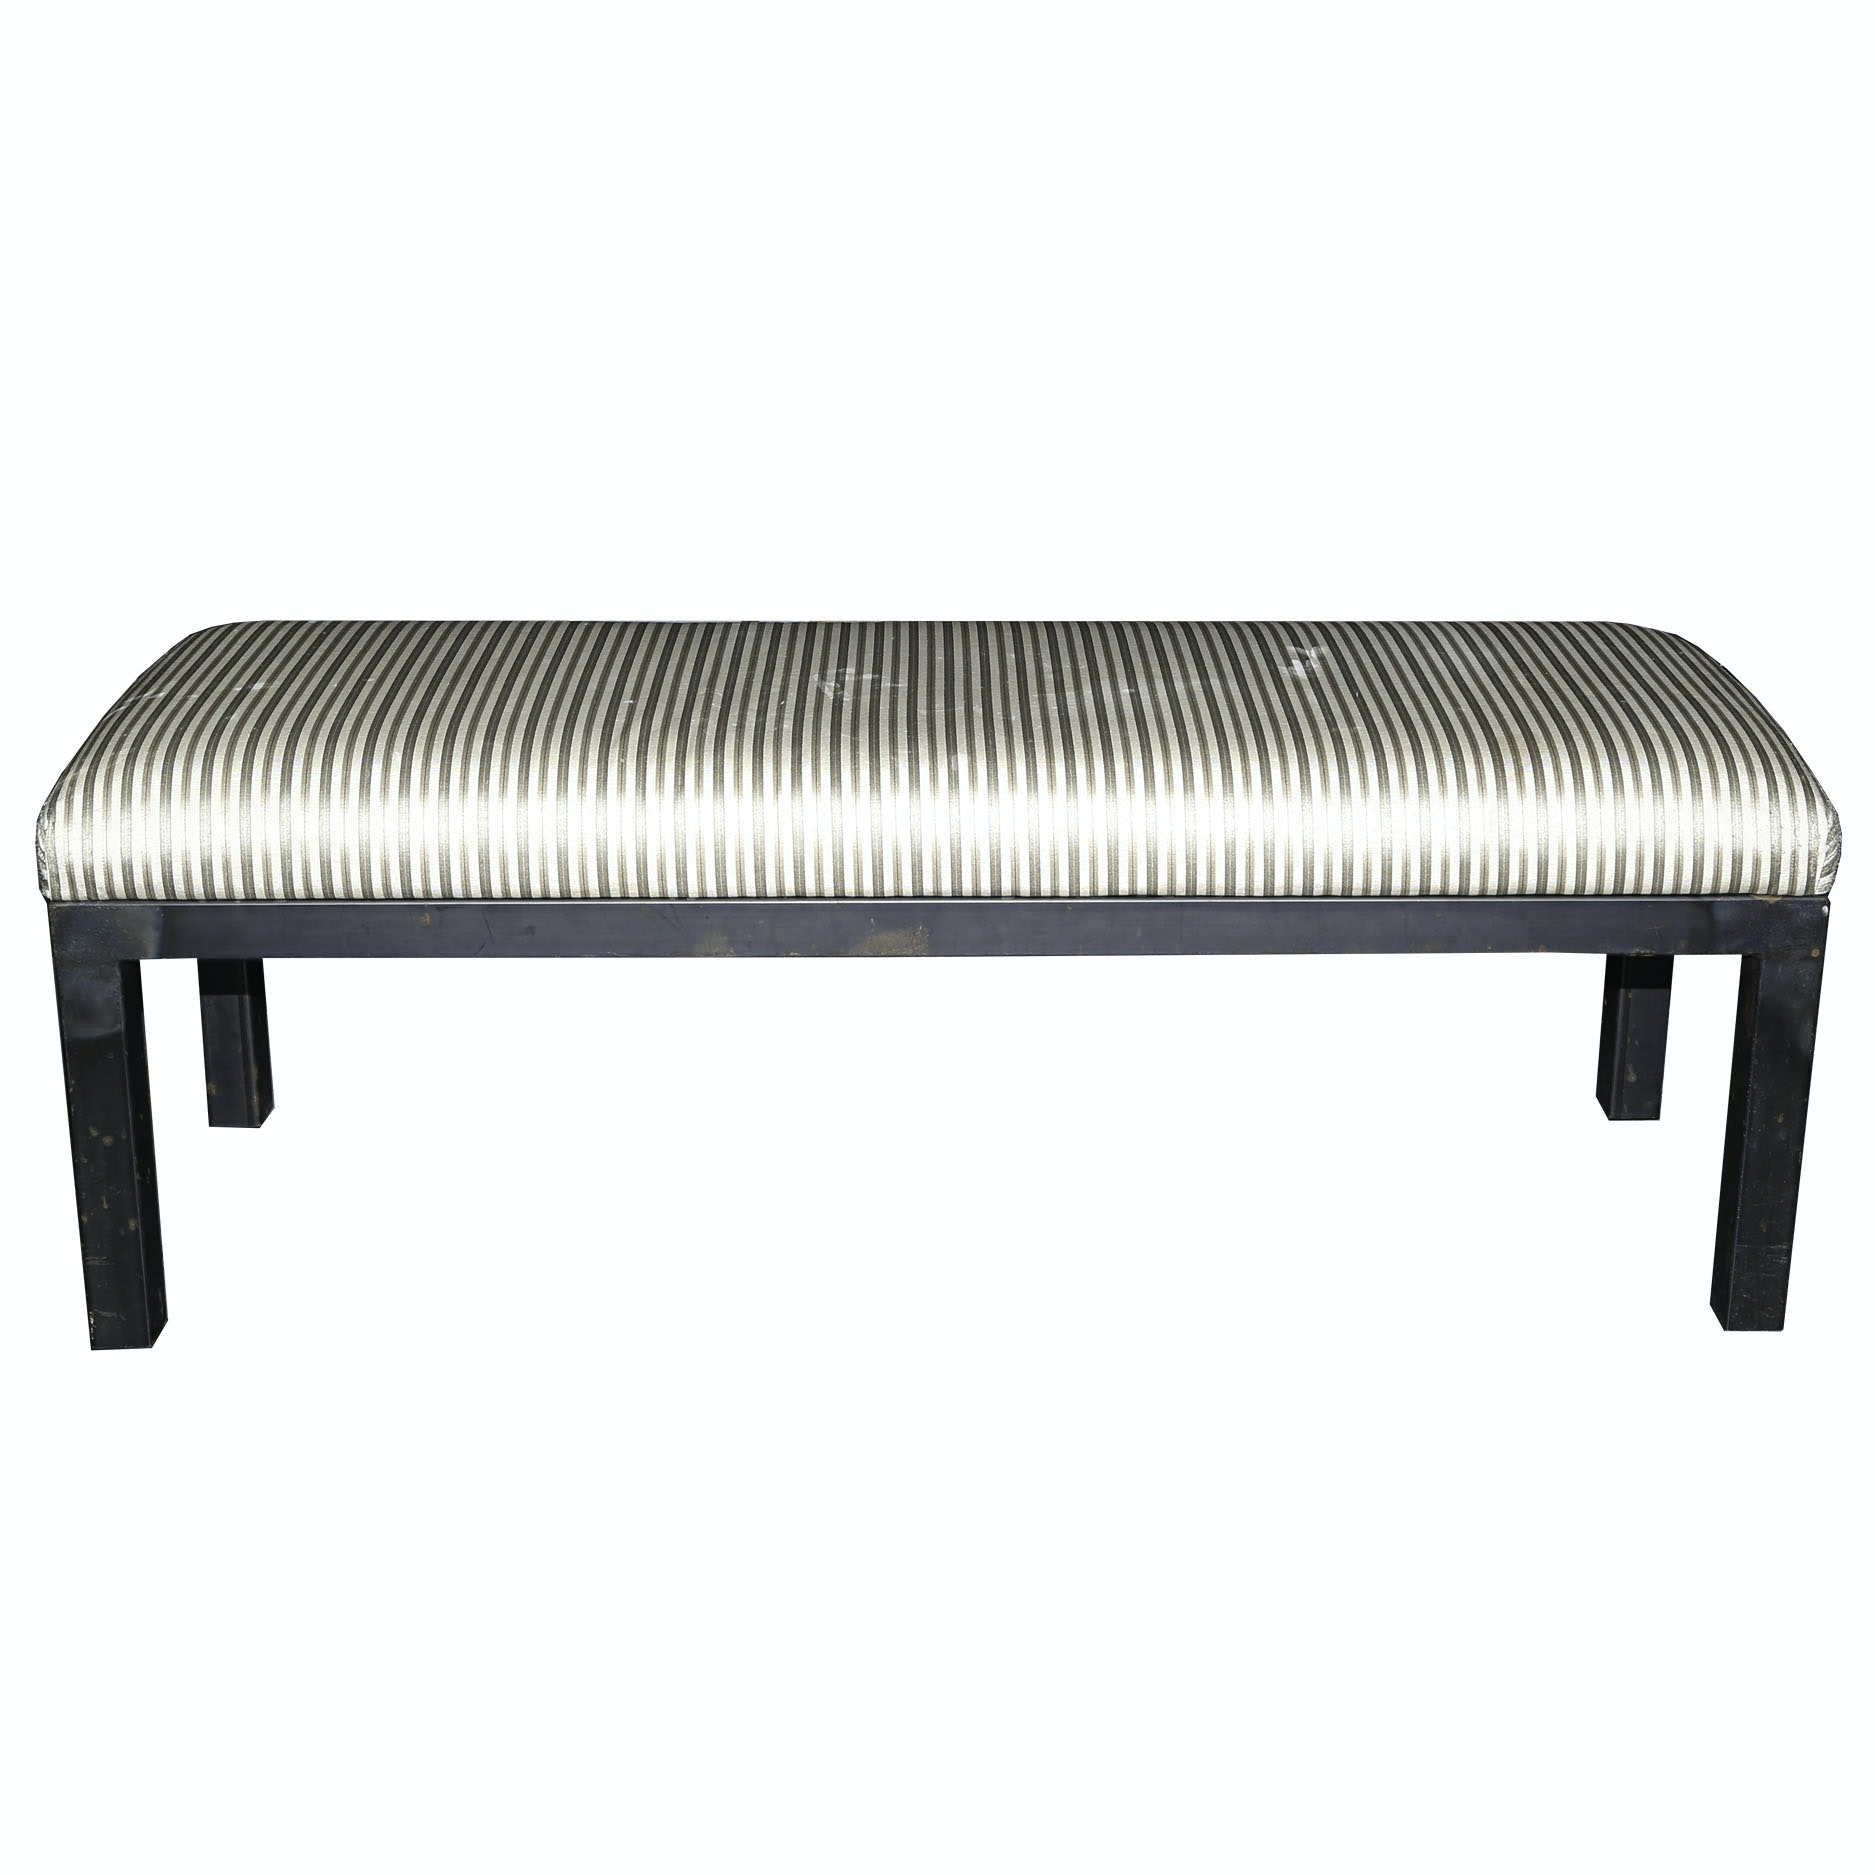 Upholstered Metal Bench